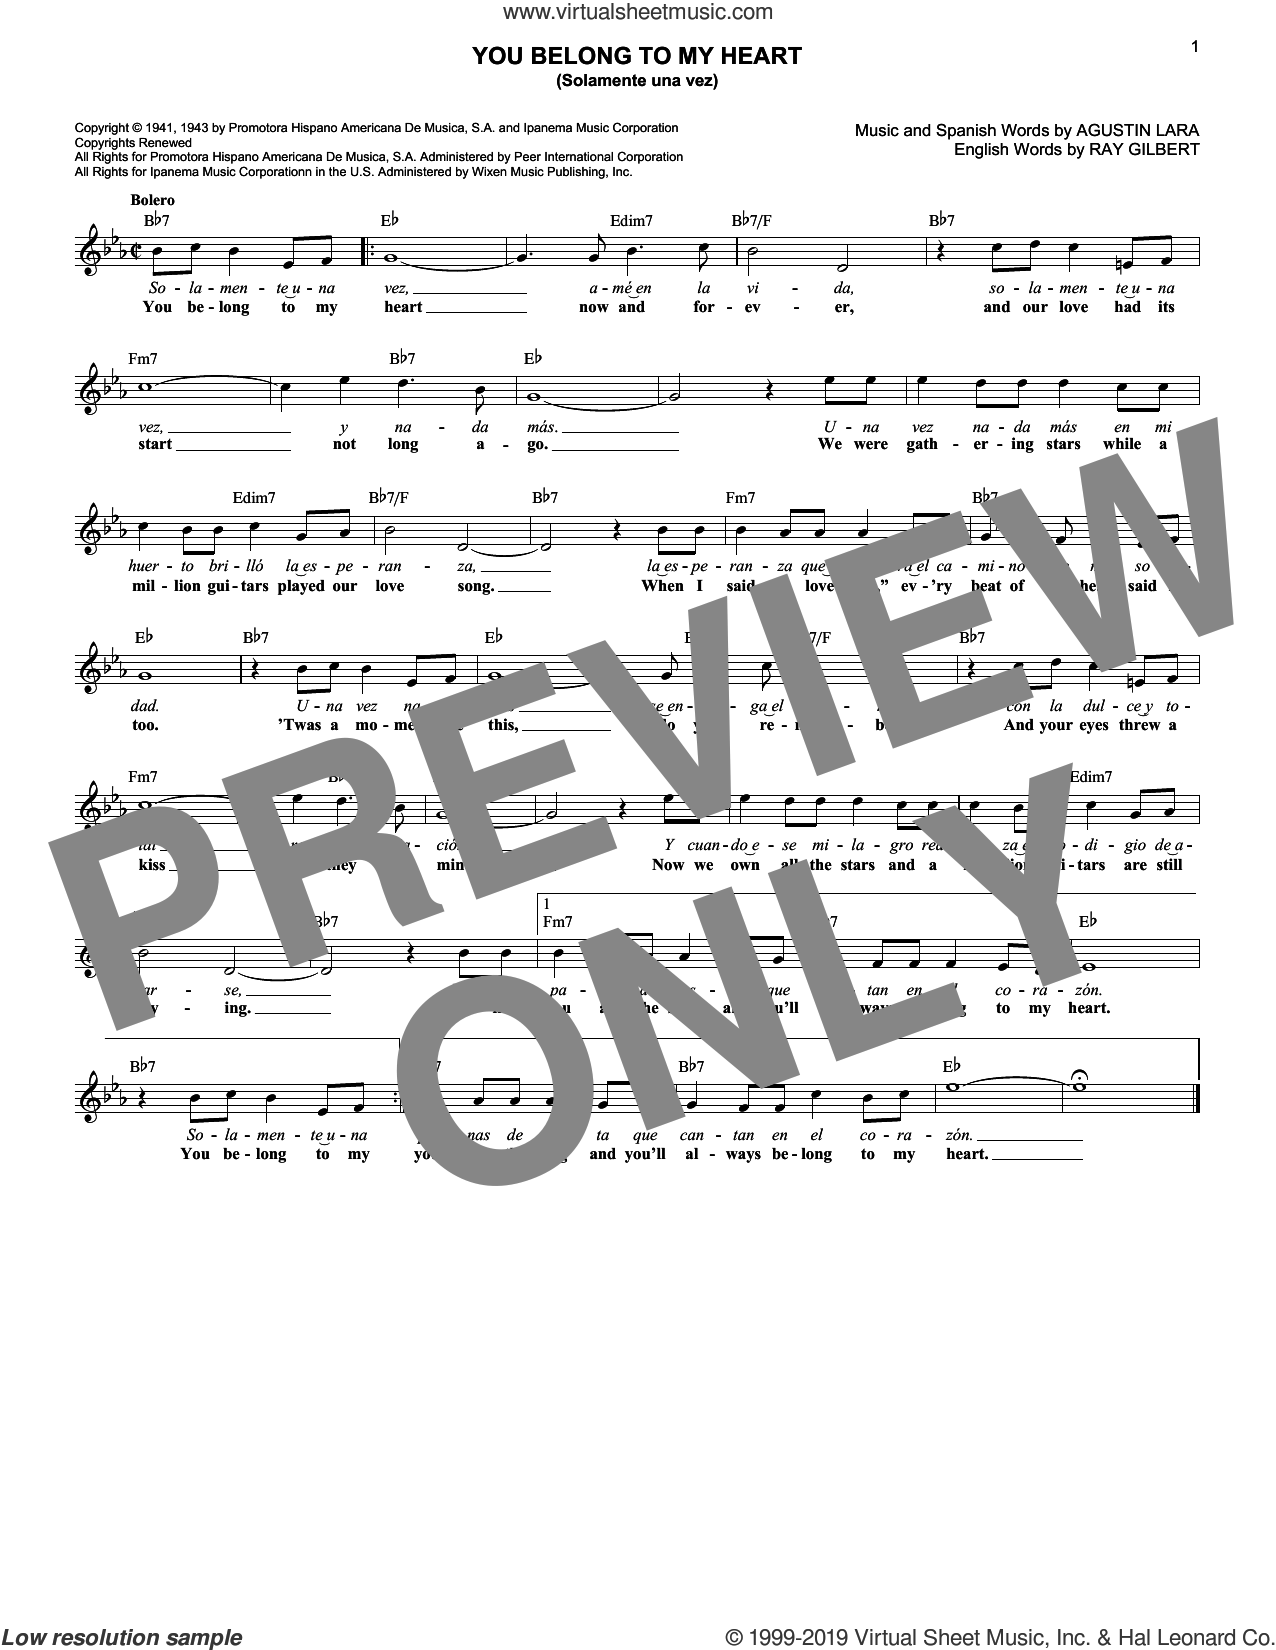 You Belong To My Heart (Solamente Una Vez) sheet music for voice and other instruments (fake book) by Agustin Lara and Ray Gilbert, intermediate skill level